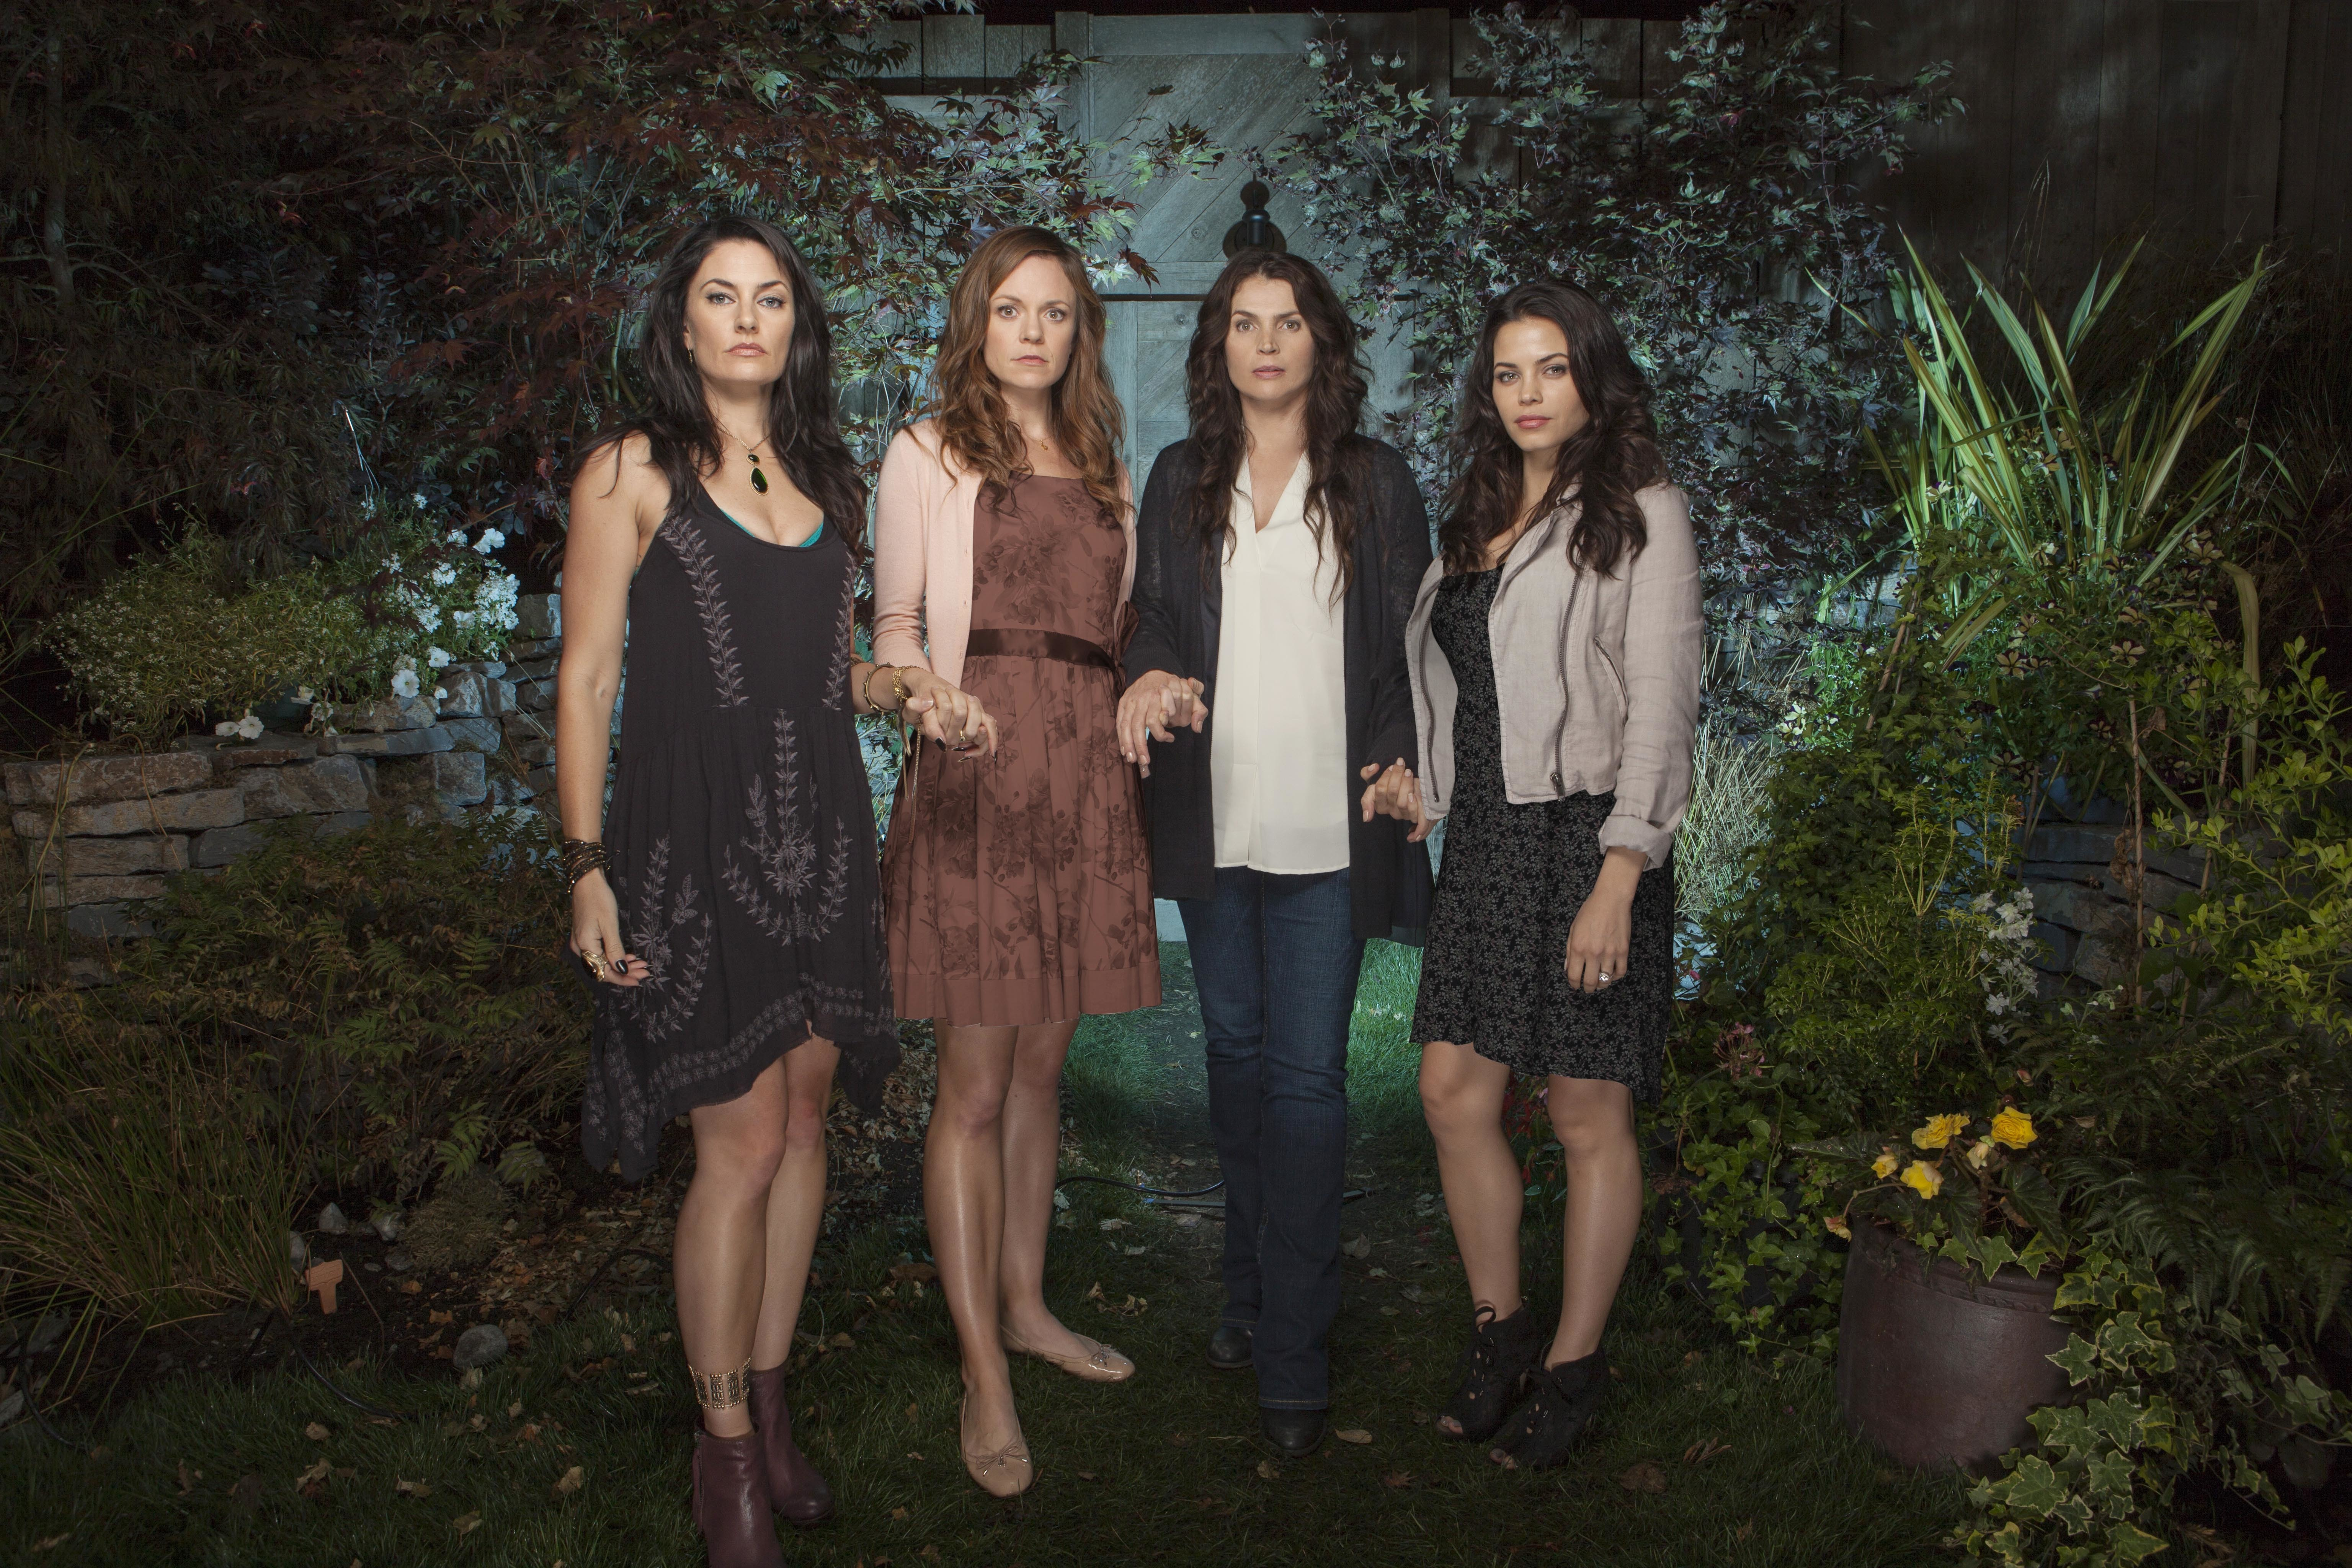 """Madchen Amick, Rachel Boston, Julia Ormond and Jenna Dewan Tatum appear in a promotional photo for Lifetime's """"Witches of East End,"""" which aired from 2013 to 2014."""